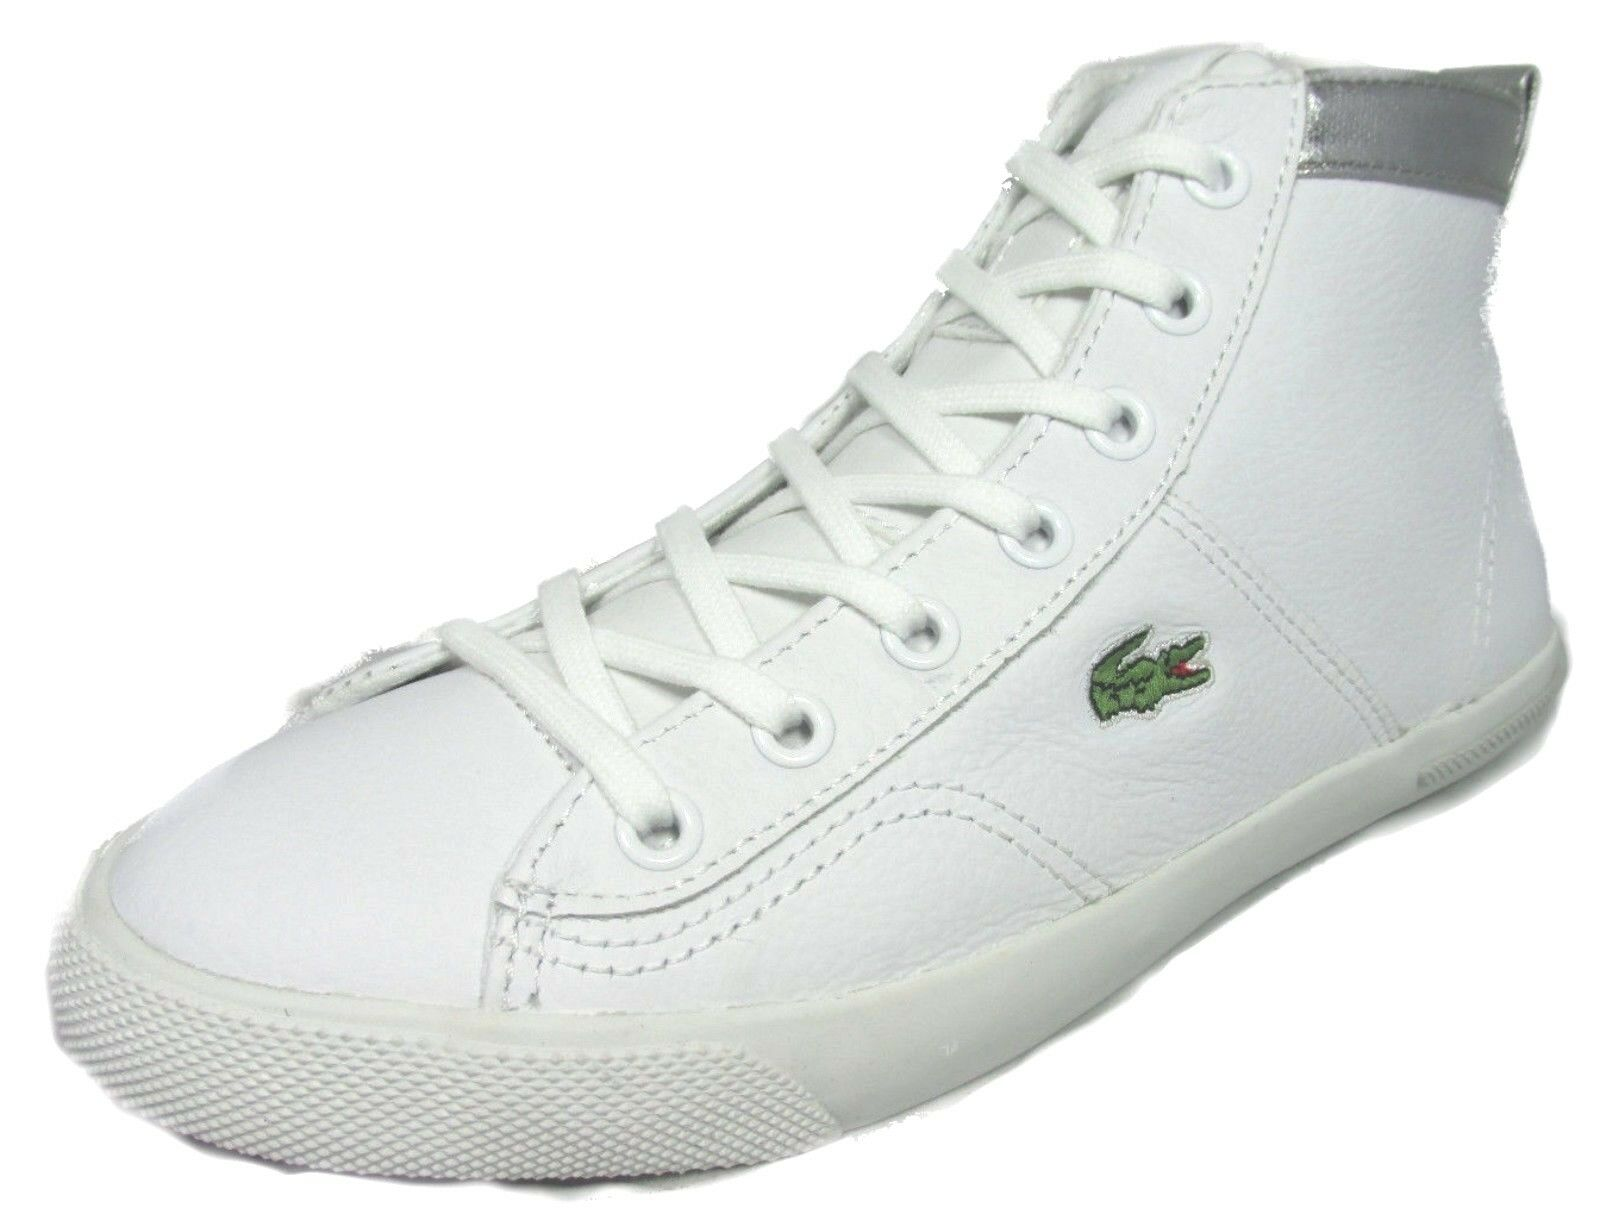 LACOSTE 725SPW4005108 RAMER HI RUS Wmn's (M)White/Silver Leather Lifestyle Shoes